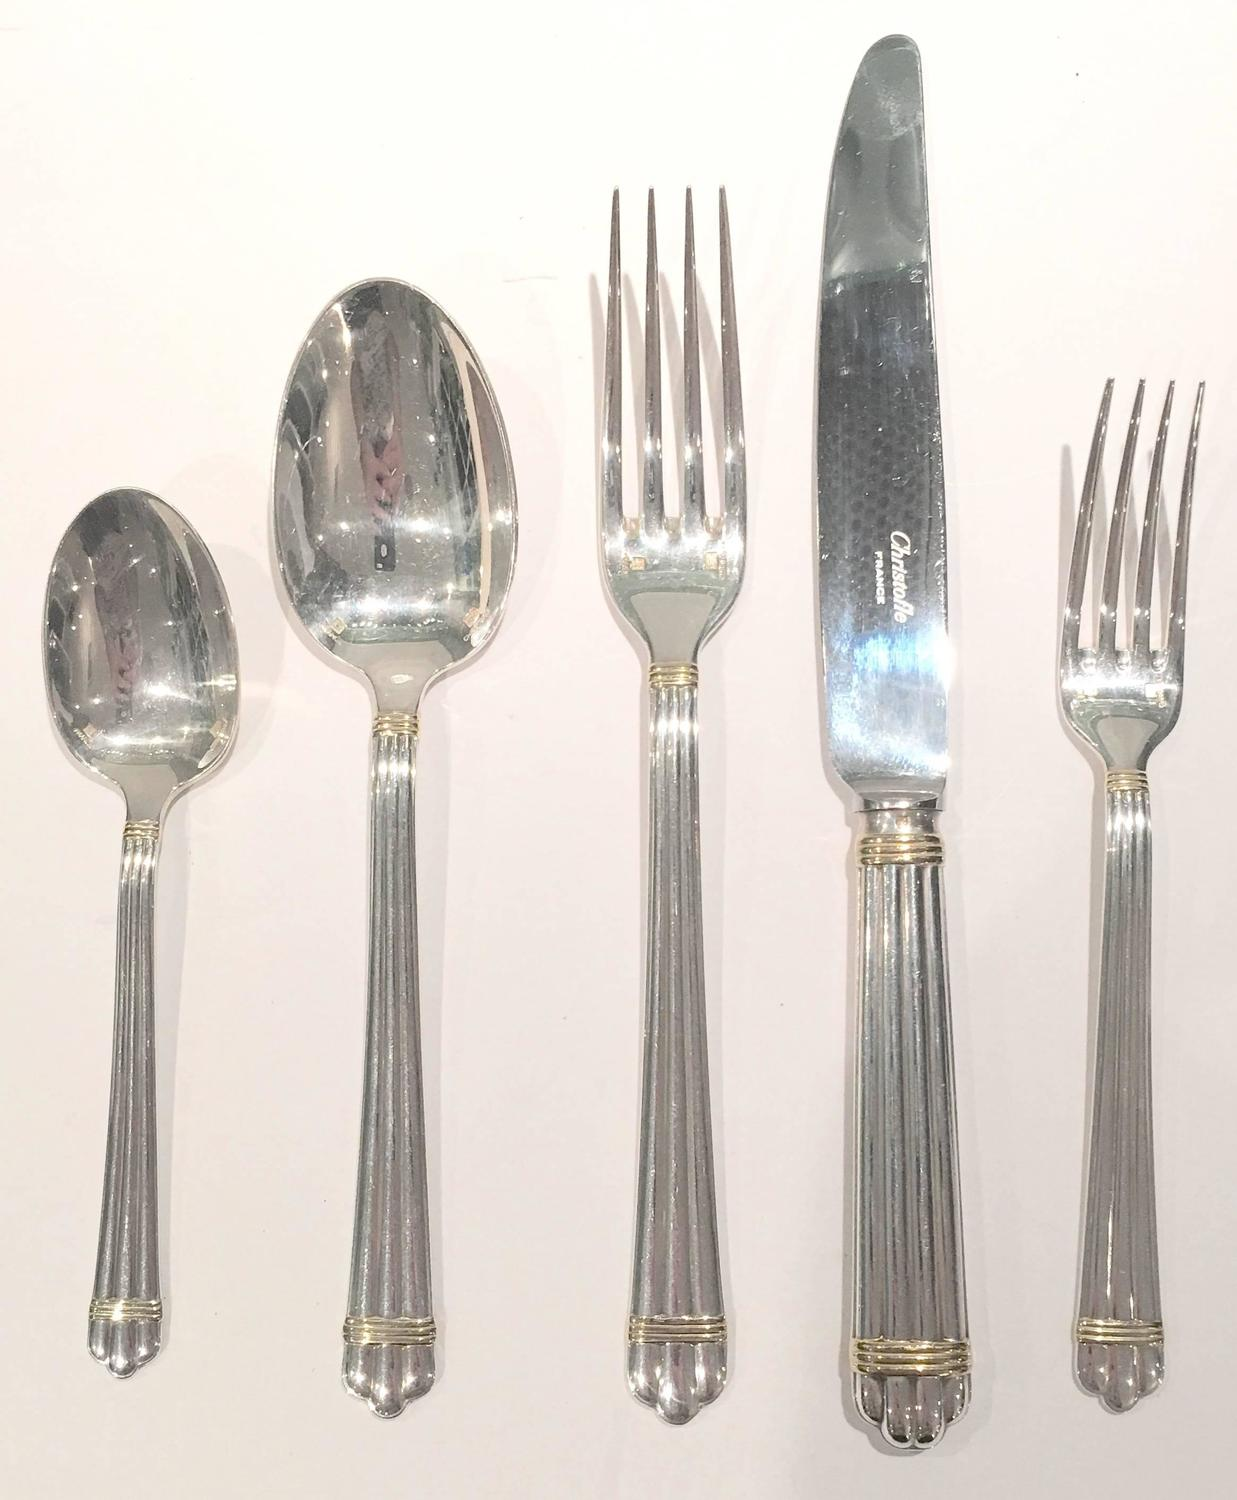 christofle silver aria gold silver plate 24 piece flatware set saturday sale at 1stdibs. Black Bedroom Furniture Sets. Home Design Ideas